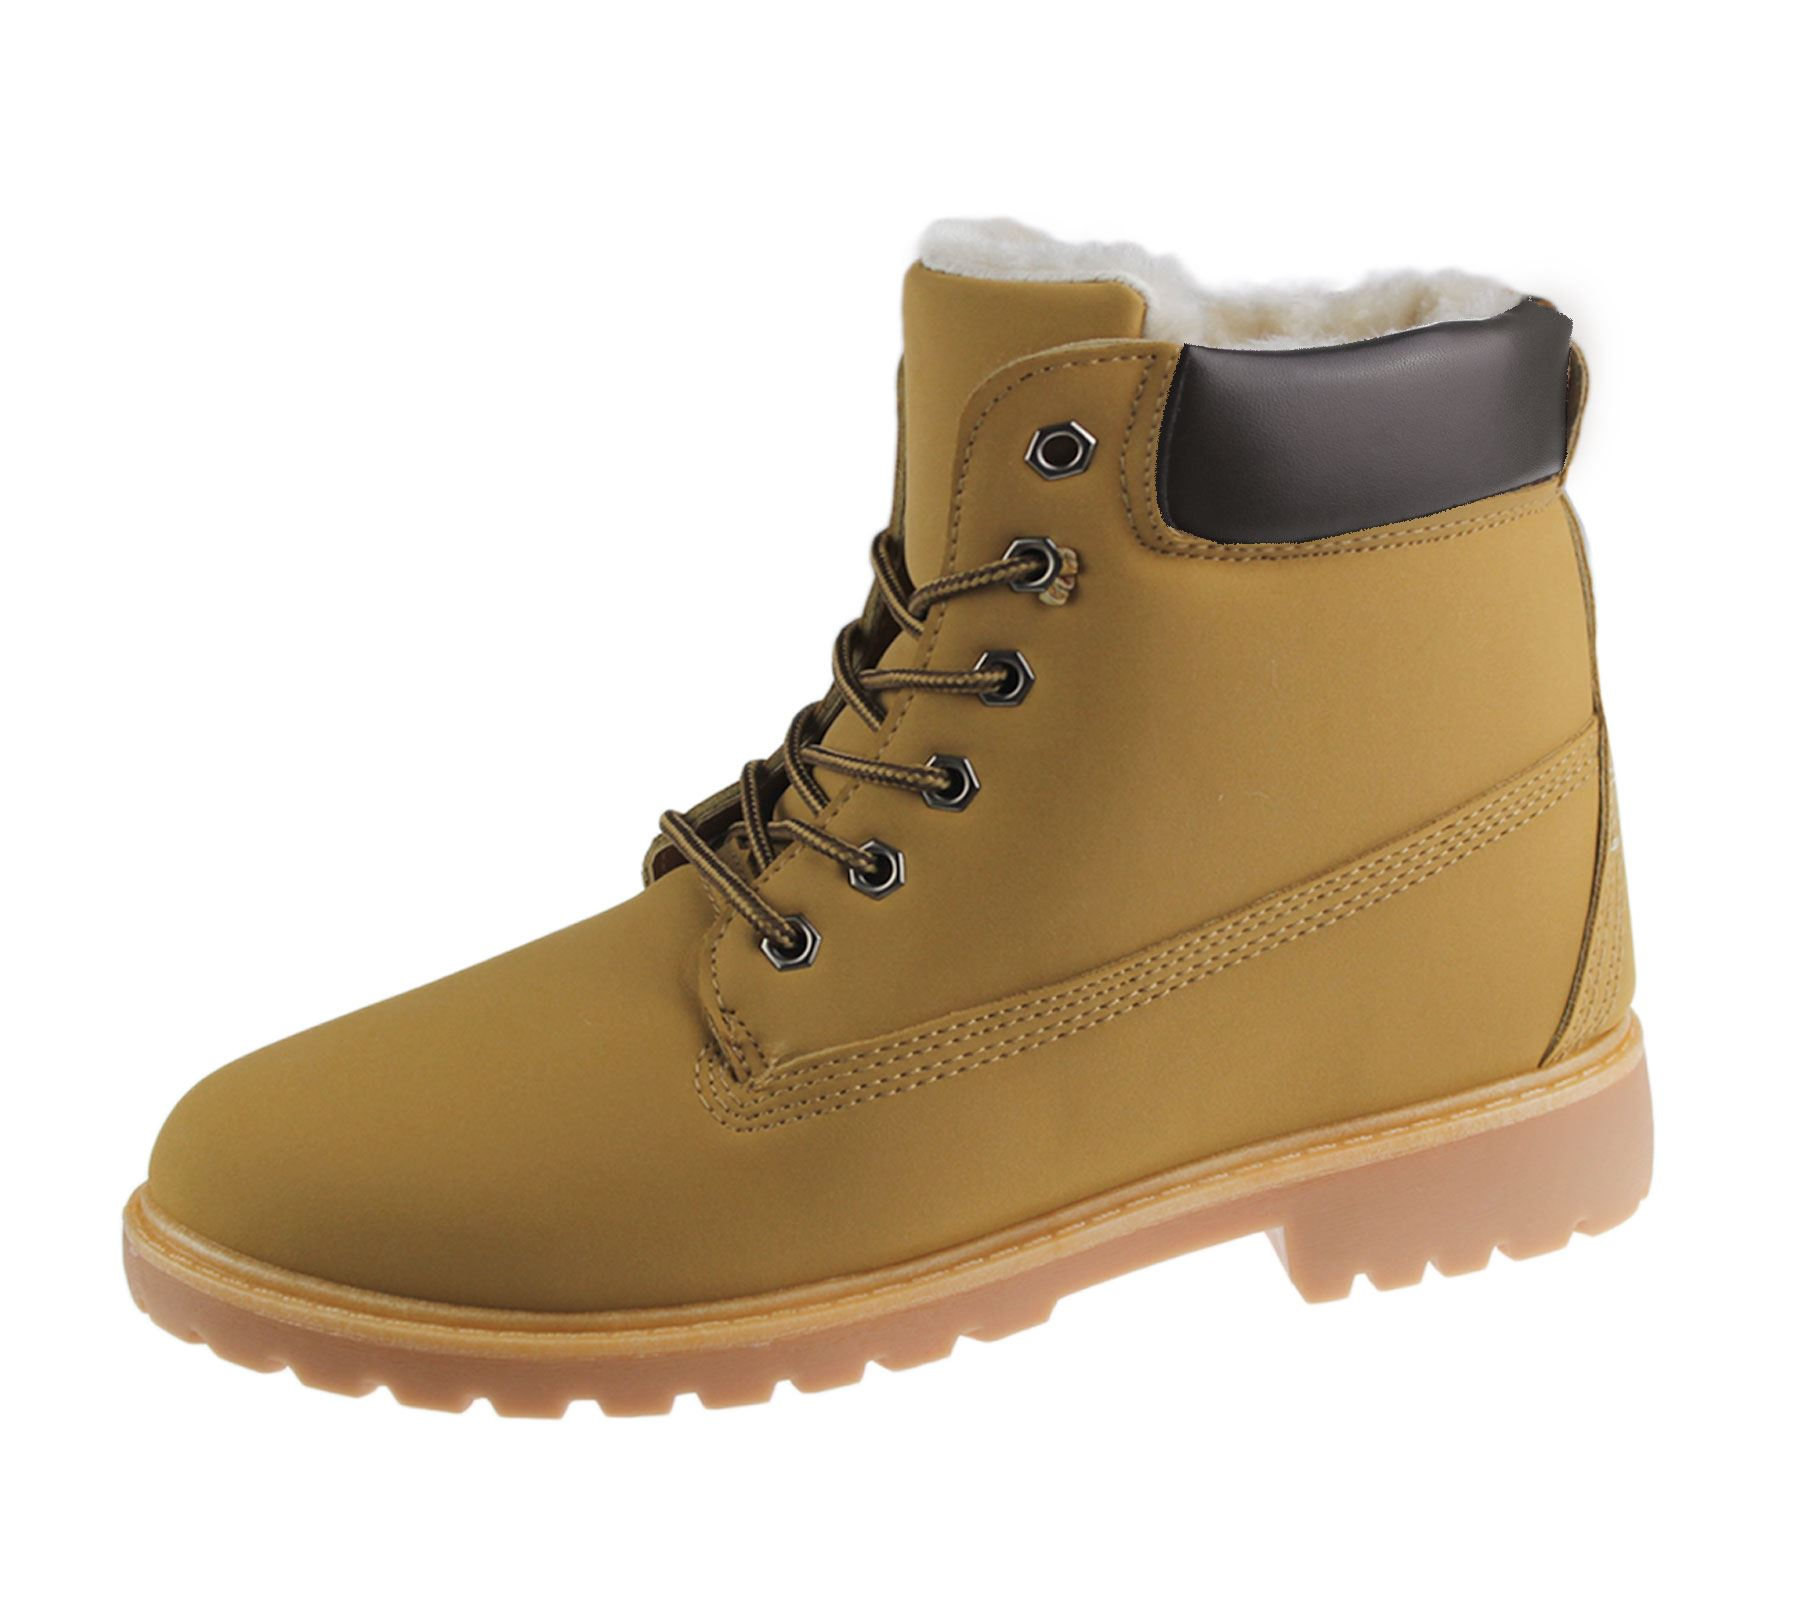 Womens Ladies Boots Grip Sole Military Combat Lace Up Ankle Smart Rubber Shoes